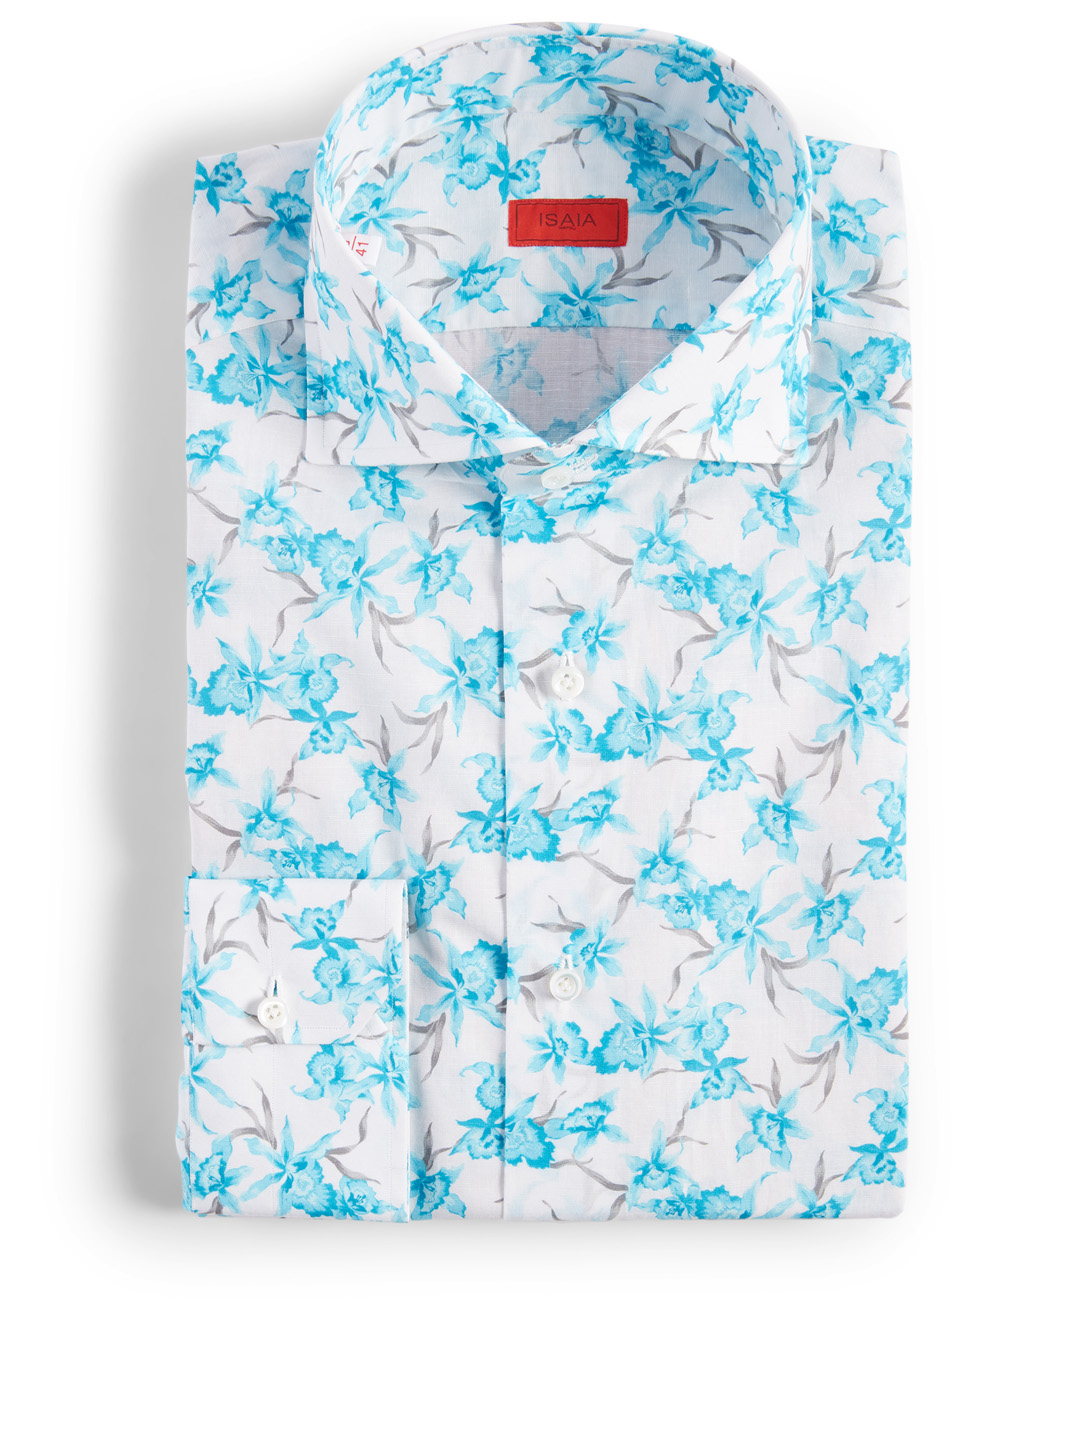 ISAIA Cotton And Linen Dress Shirt In Floral Print Men's Blue